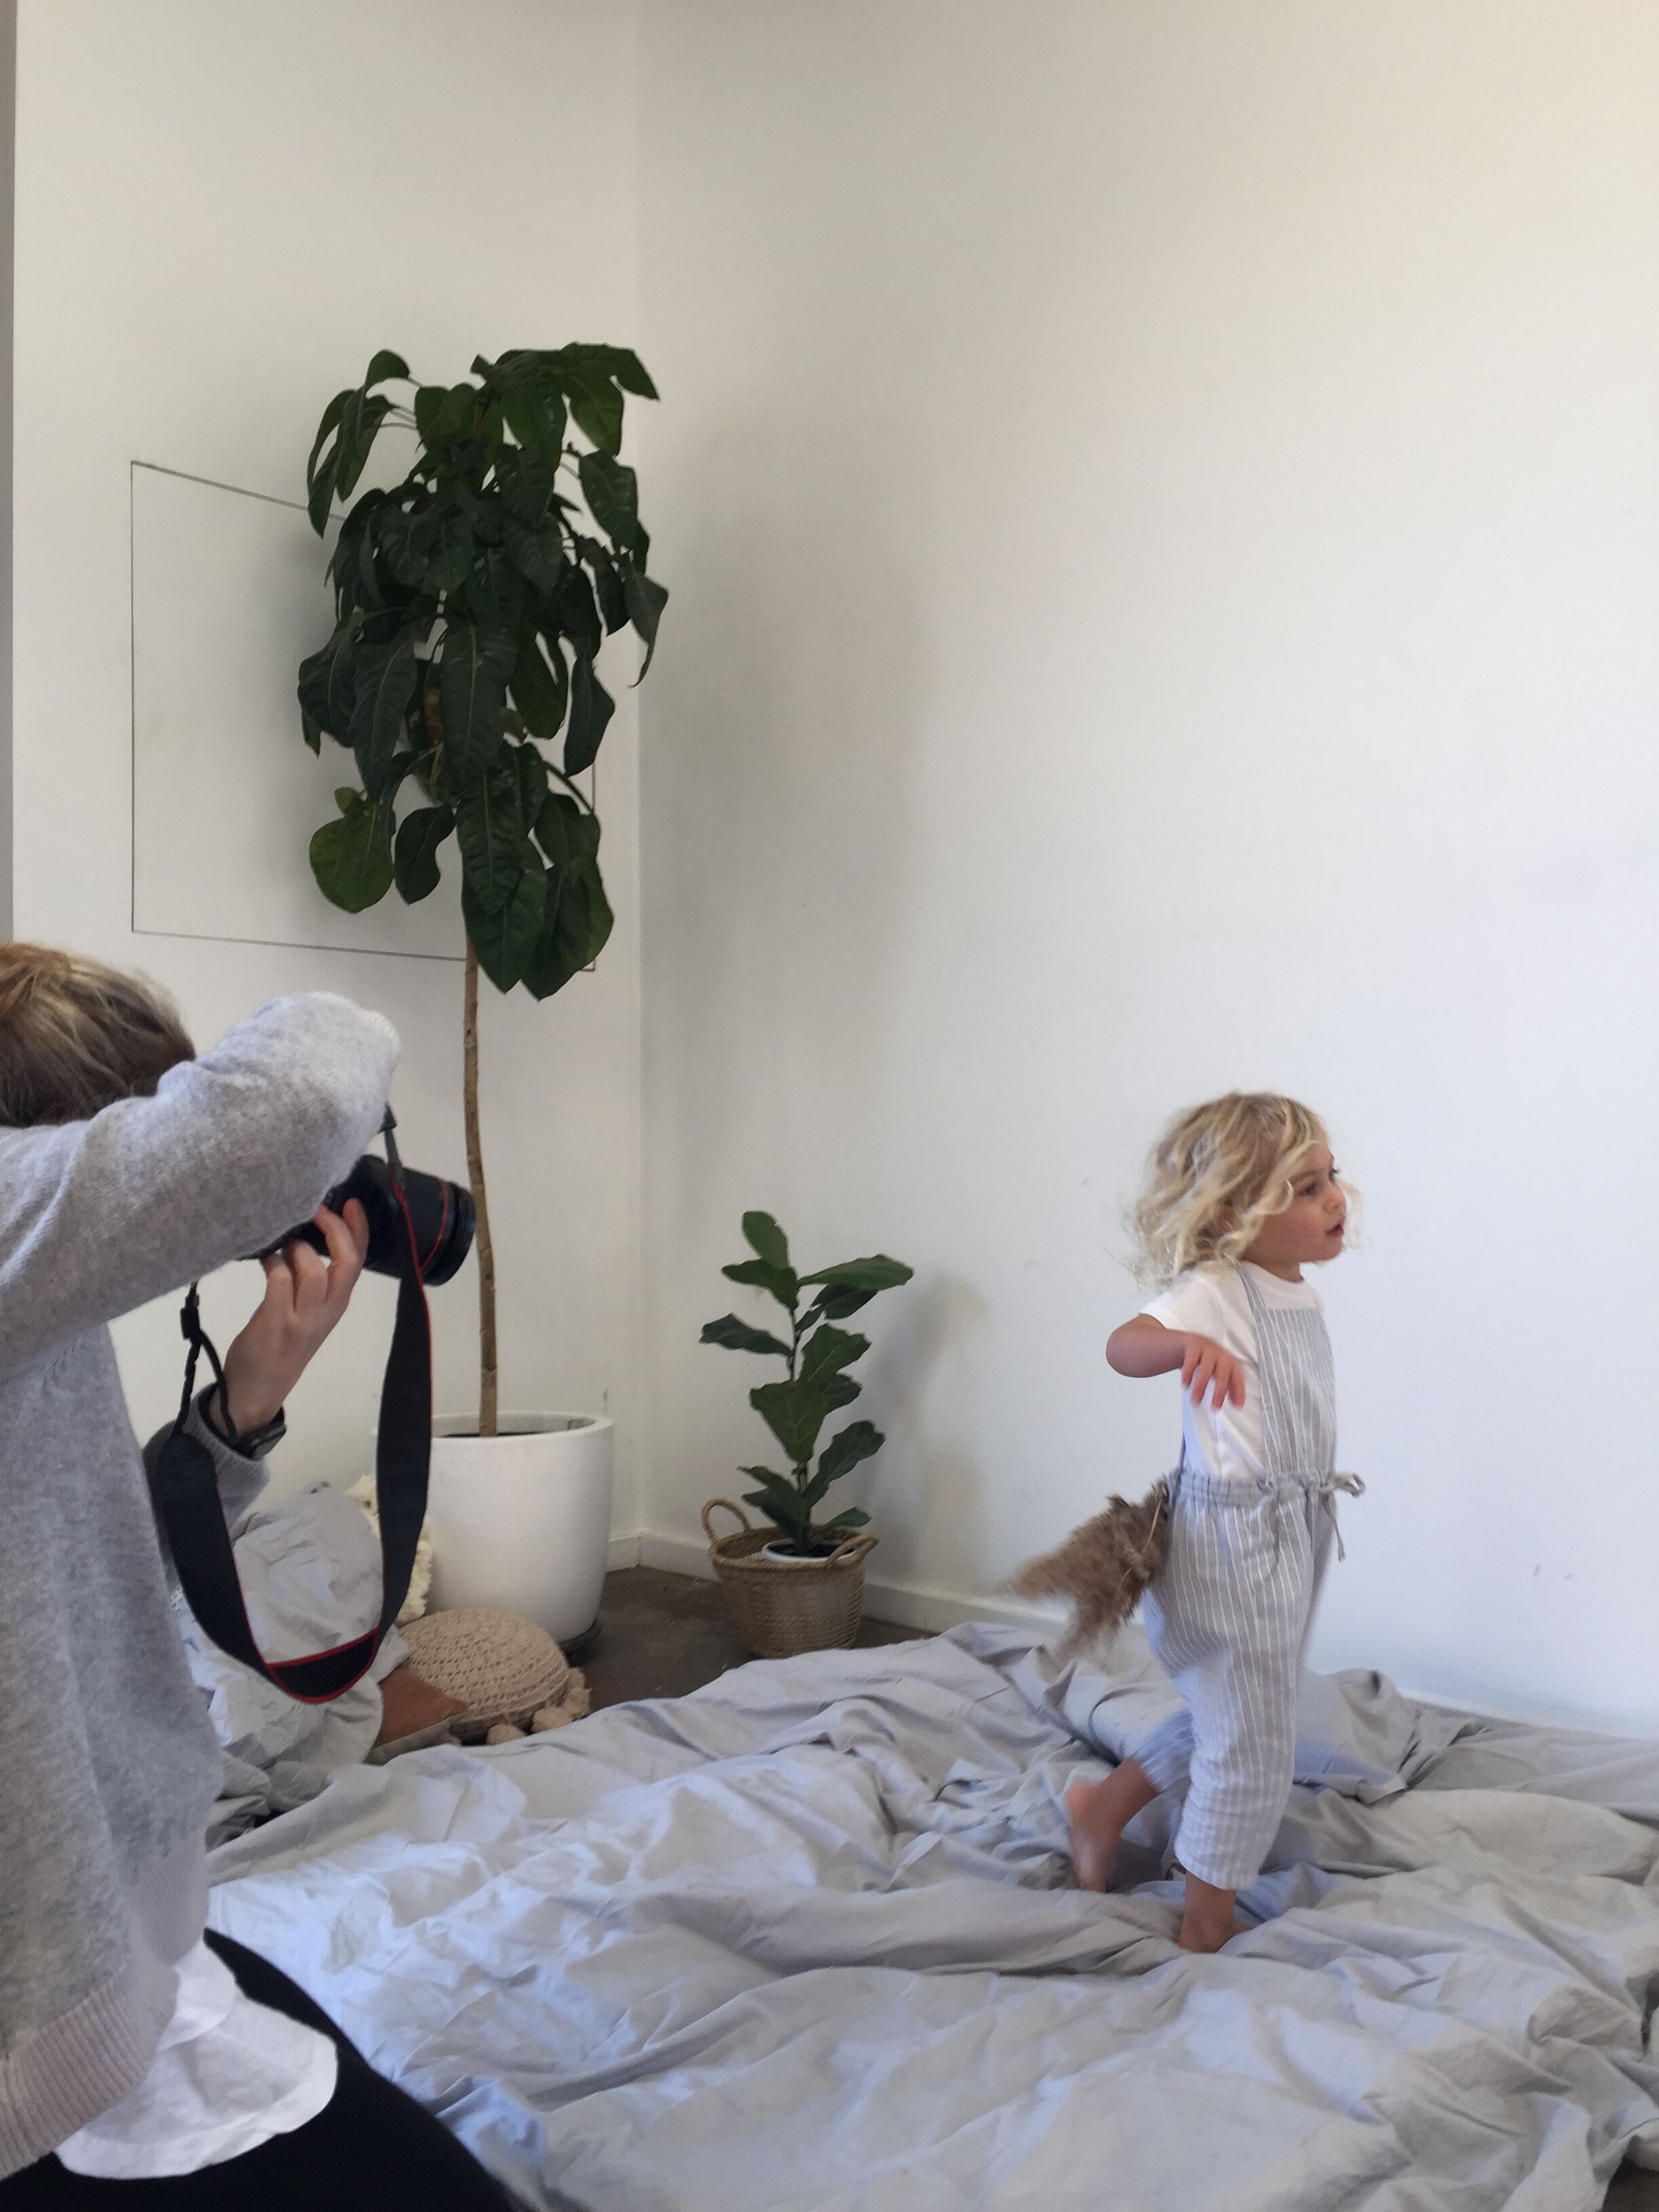 photoshoot-booking-the-nook-creative-space-hire-mornington-1000px-0020.jpg